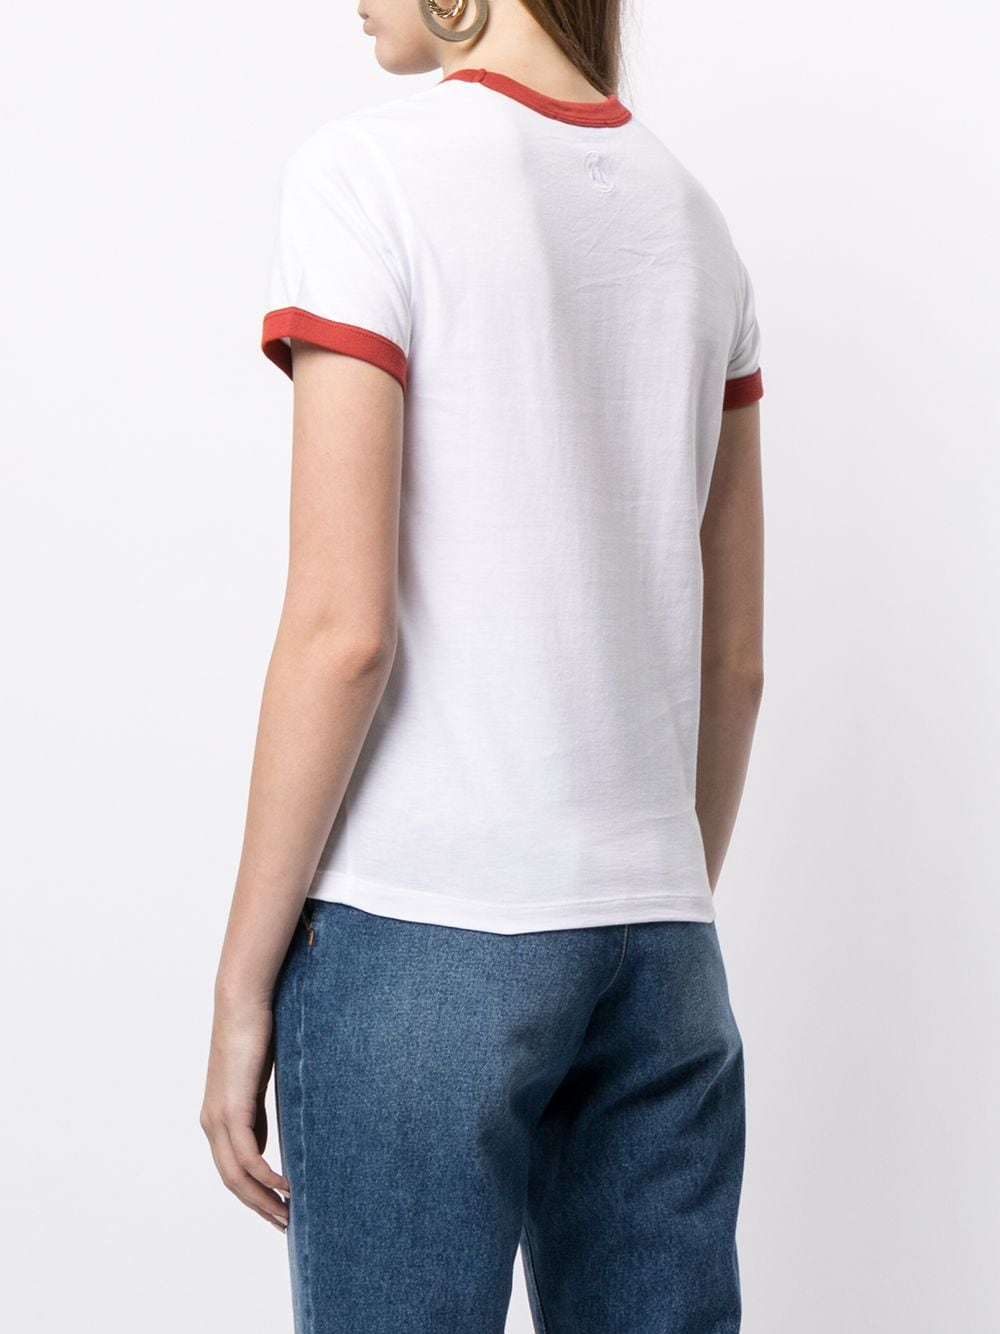 LANVIN WOMEN LOGO T-SHIRT